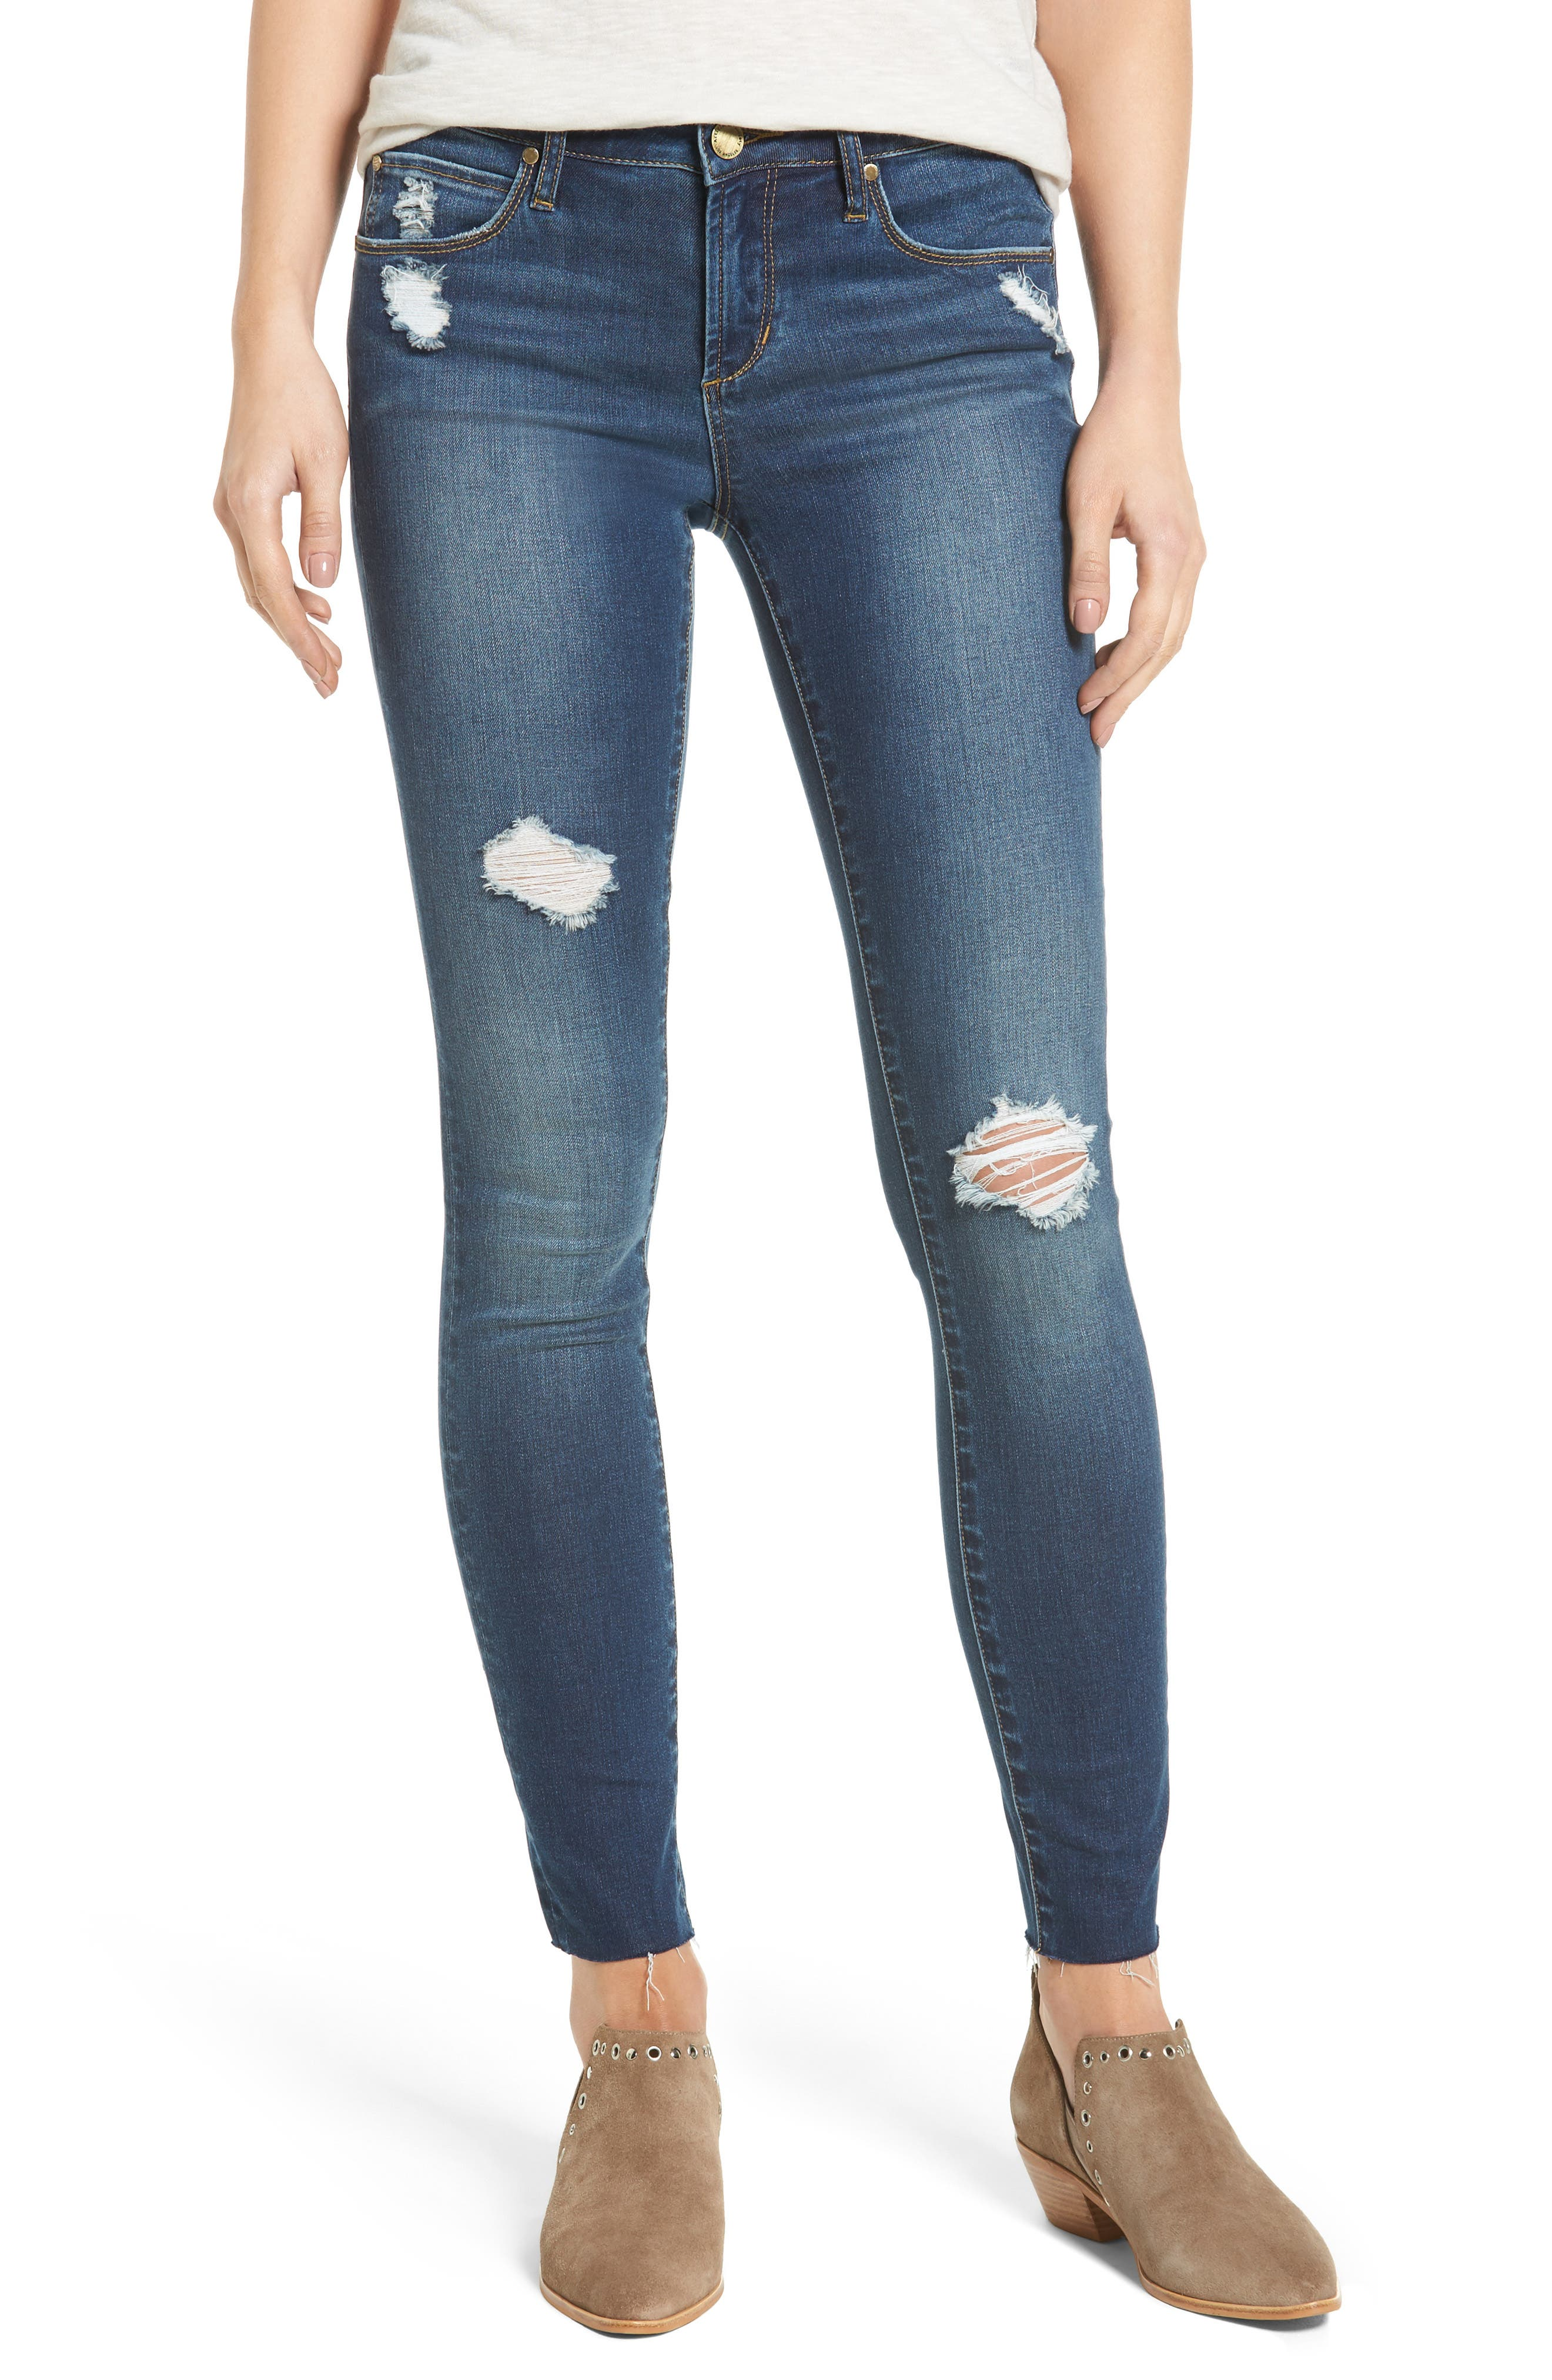 Main Image - Articles of Society Sarah Skinny Jeans (Vintage)